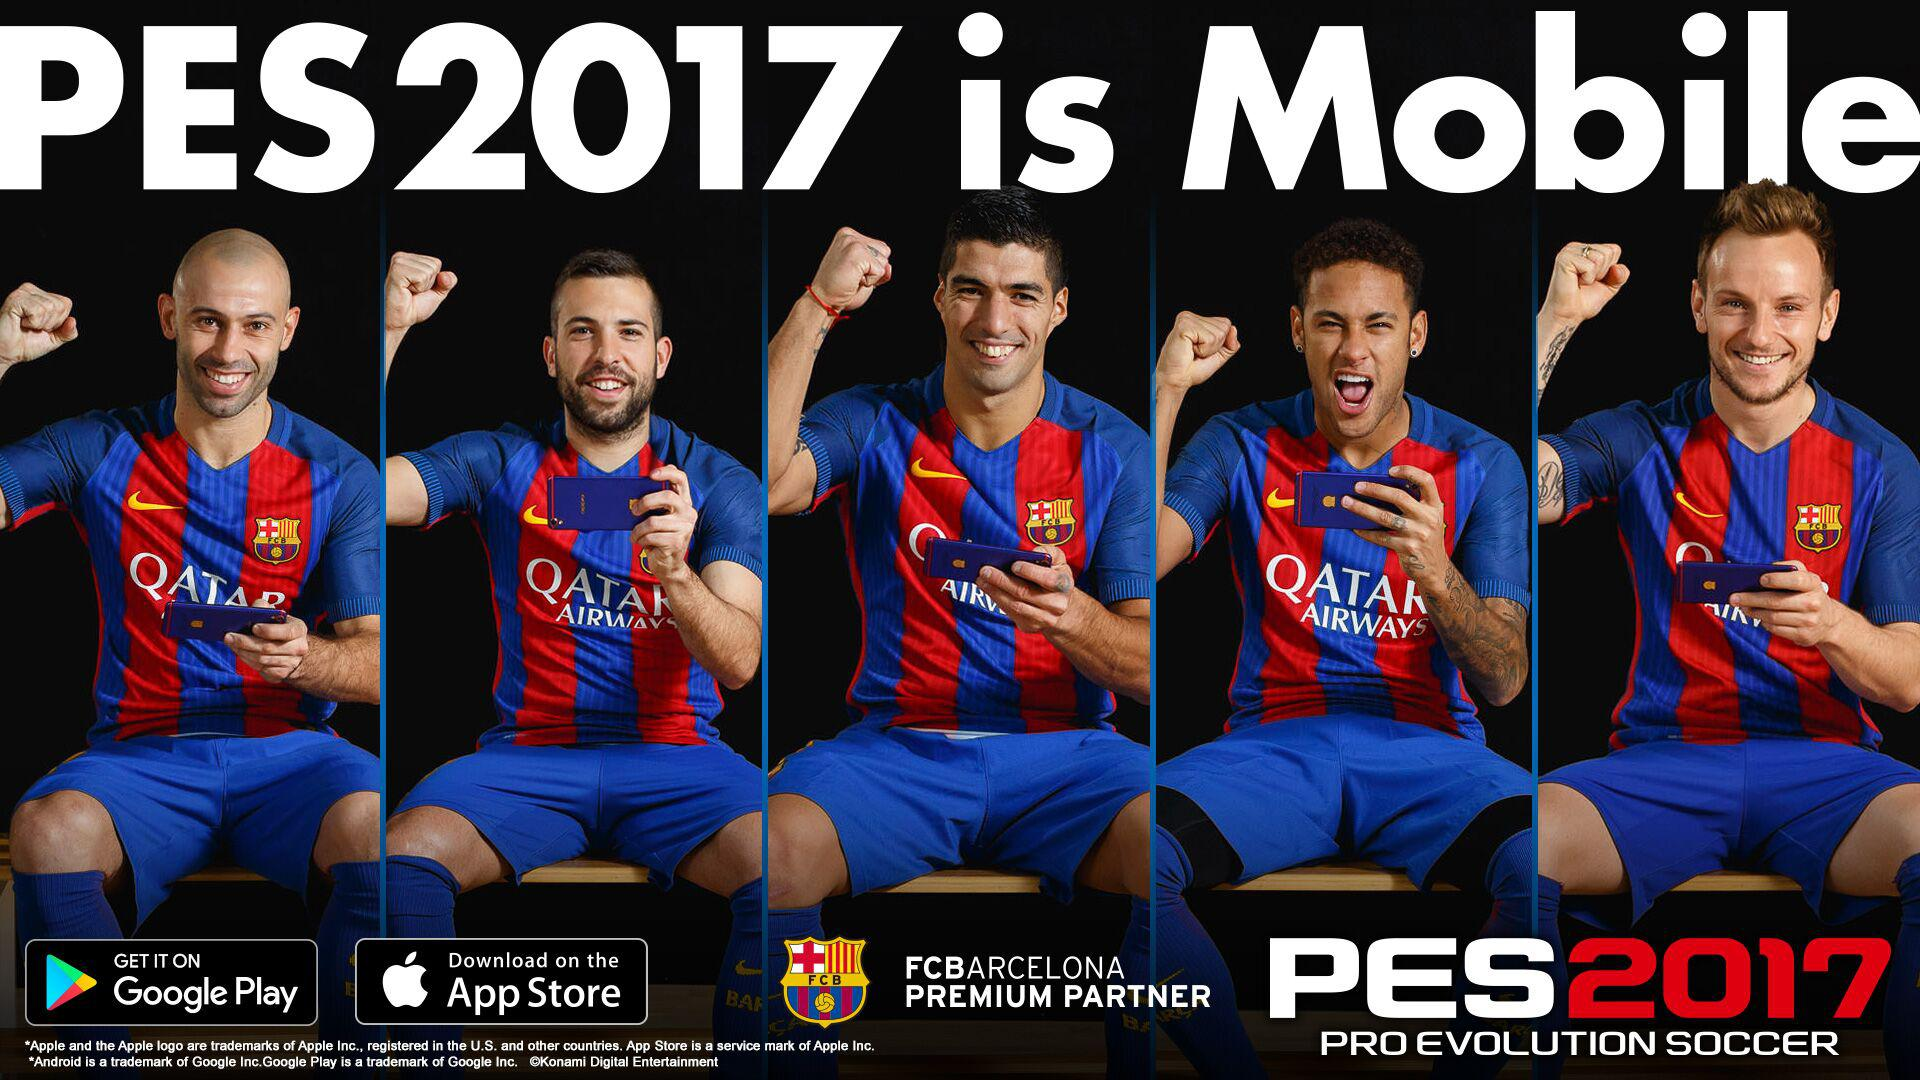 The Barcelona team have got behind the launch – posing 'naturally' with their mobile phones